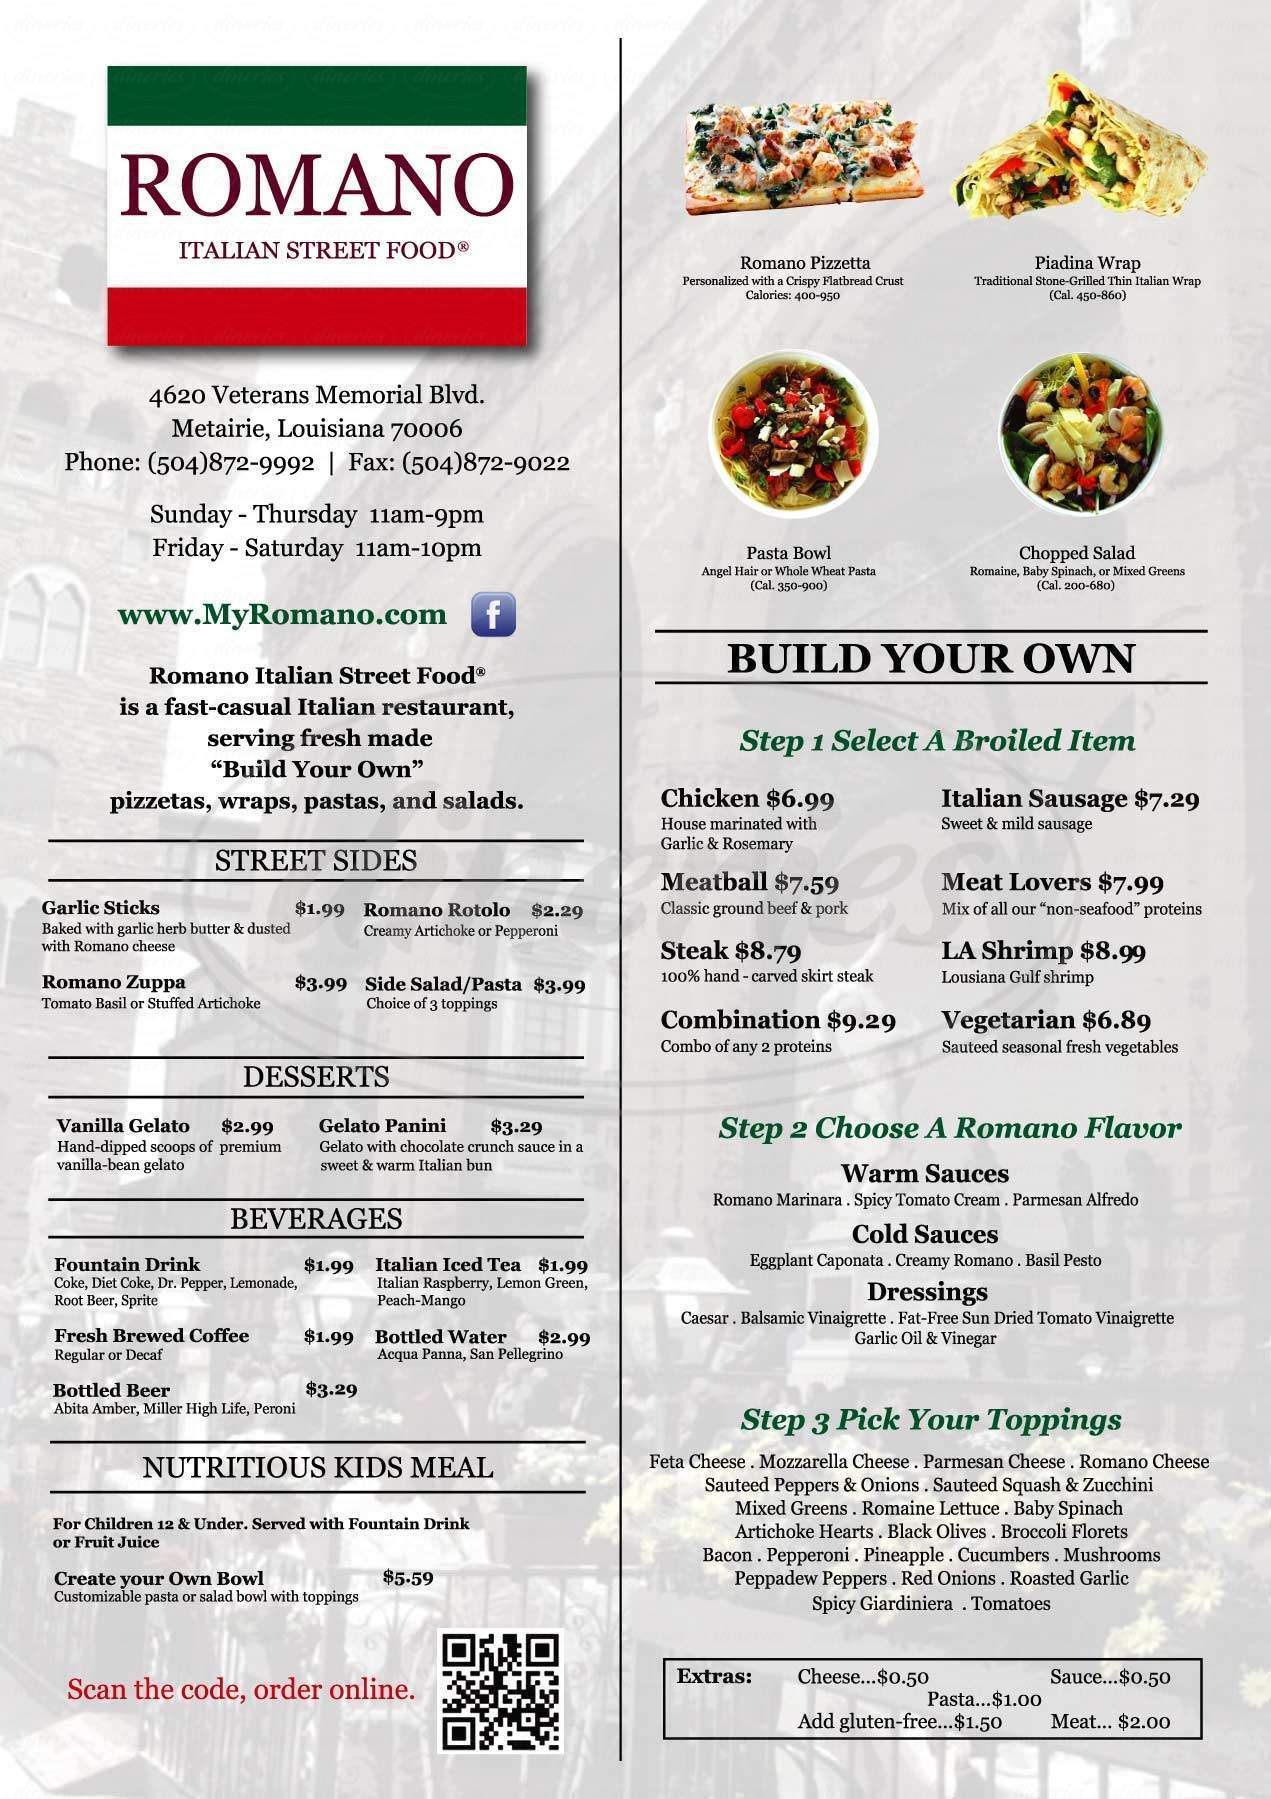 menu for Romano Italian Street Food